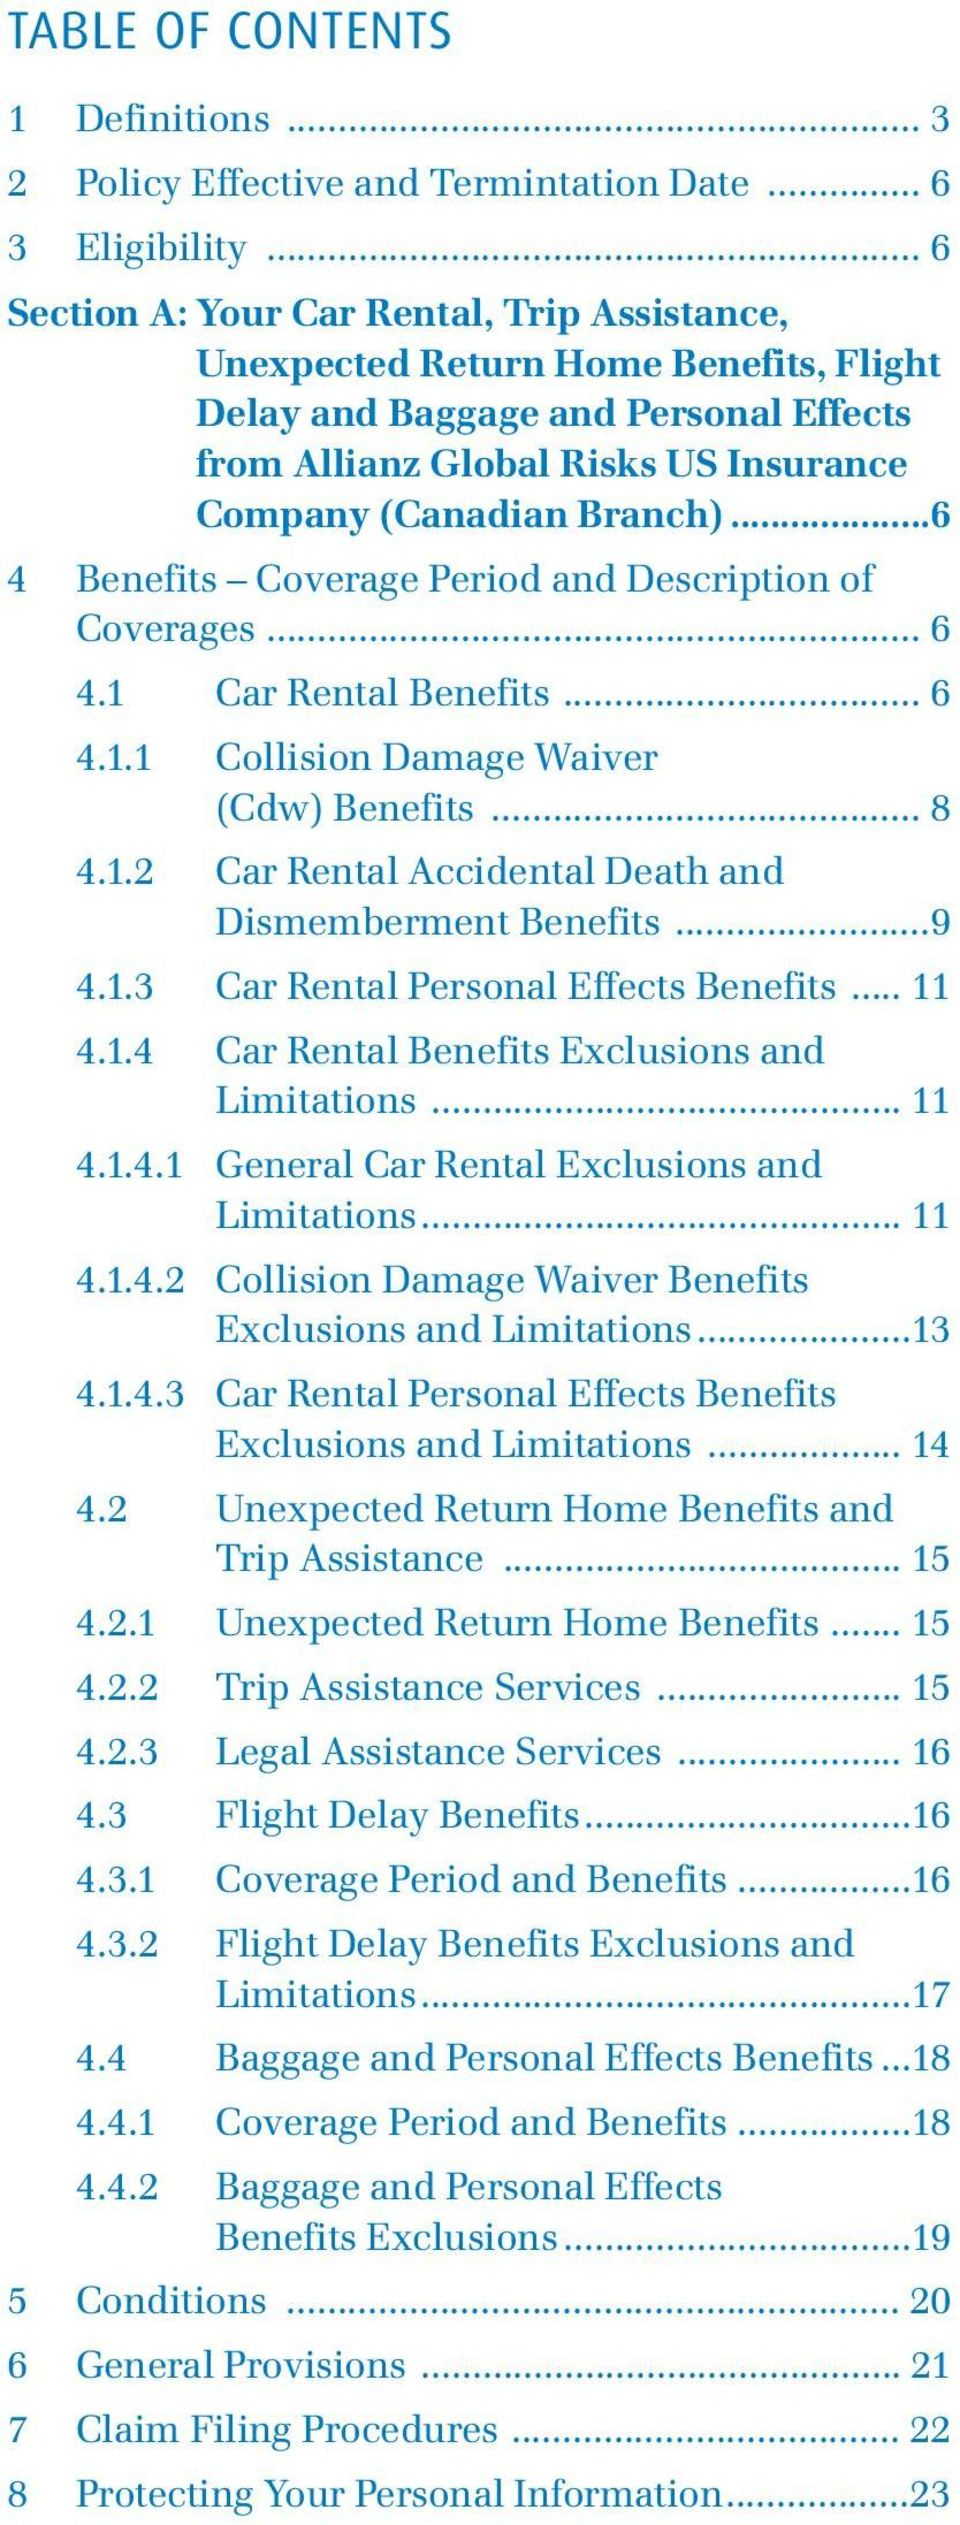 ..6 4 Benefits Coverage Period and Description of Coverages... 6 4.1 Car Rental Benefits... 6 4.1.1 Collision Damage Waiver (Cdw) Benefits... 8 4.1.2 Car Rental Accidental Death and Dismemberment Benefits.